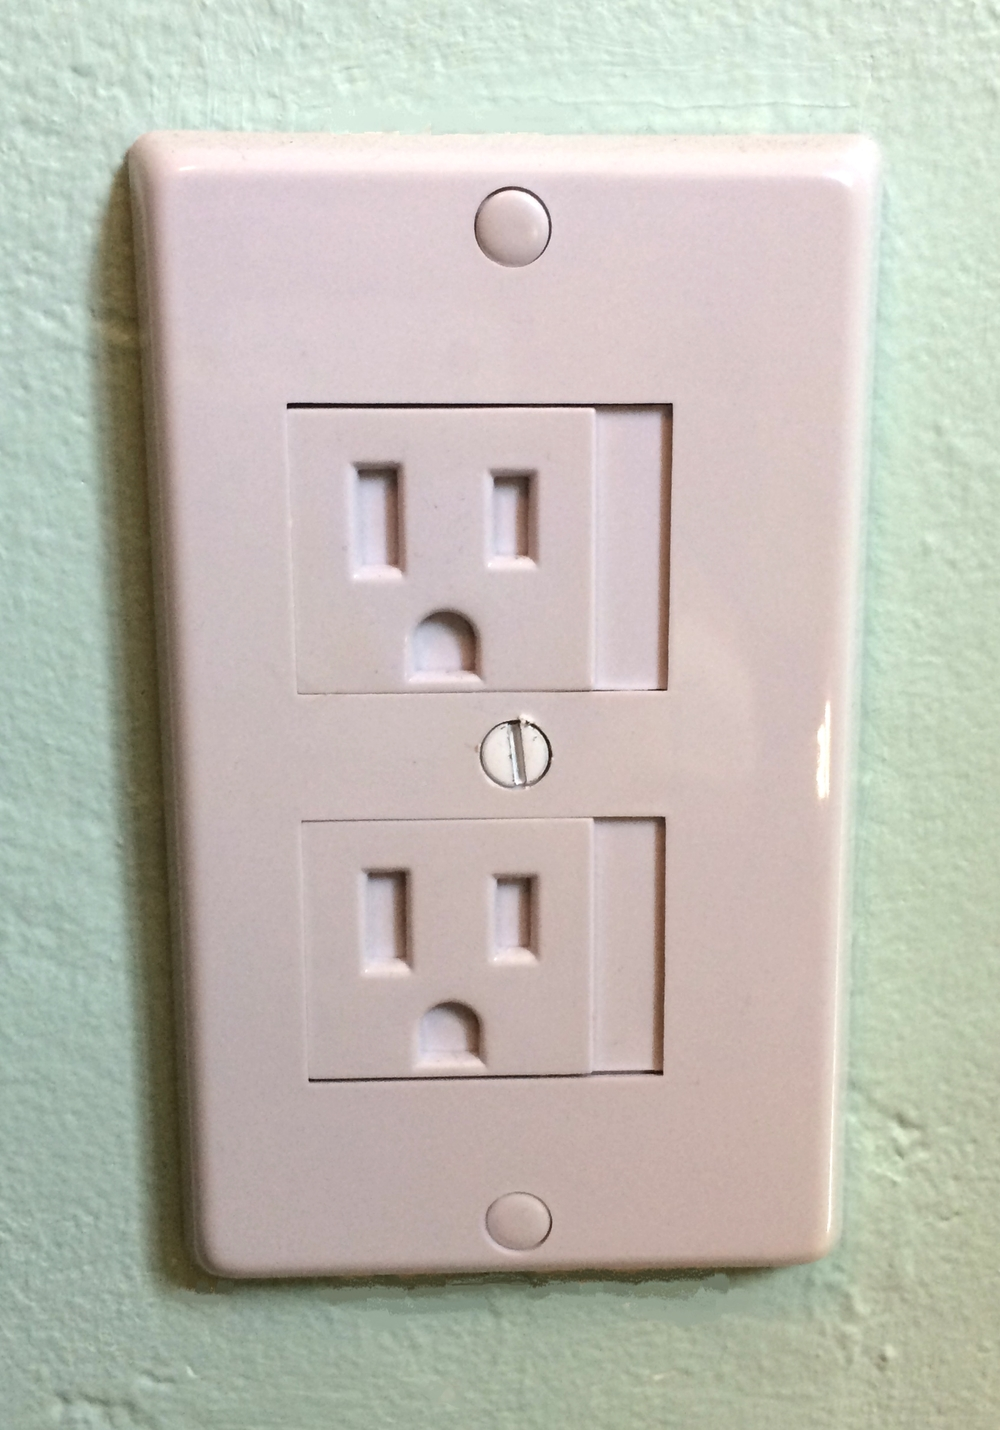 Wall Socket Covers How To Baby Proof Electrical Outlets  Baby Proofing Tips And